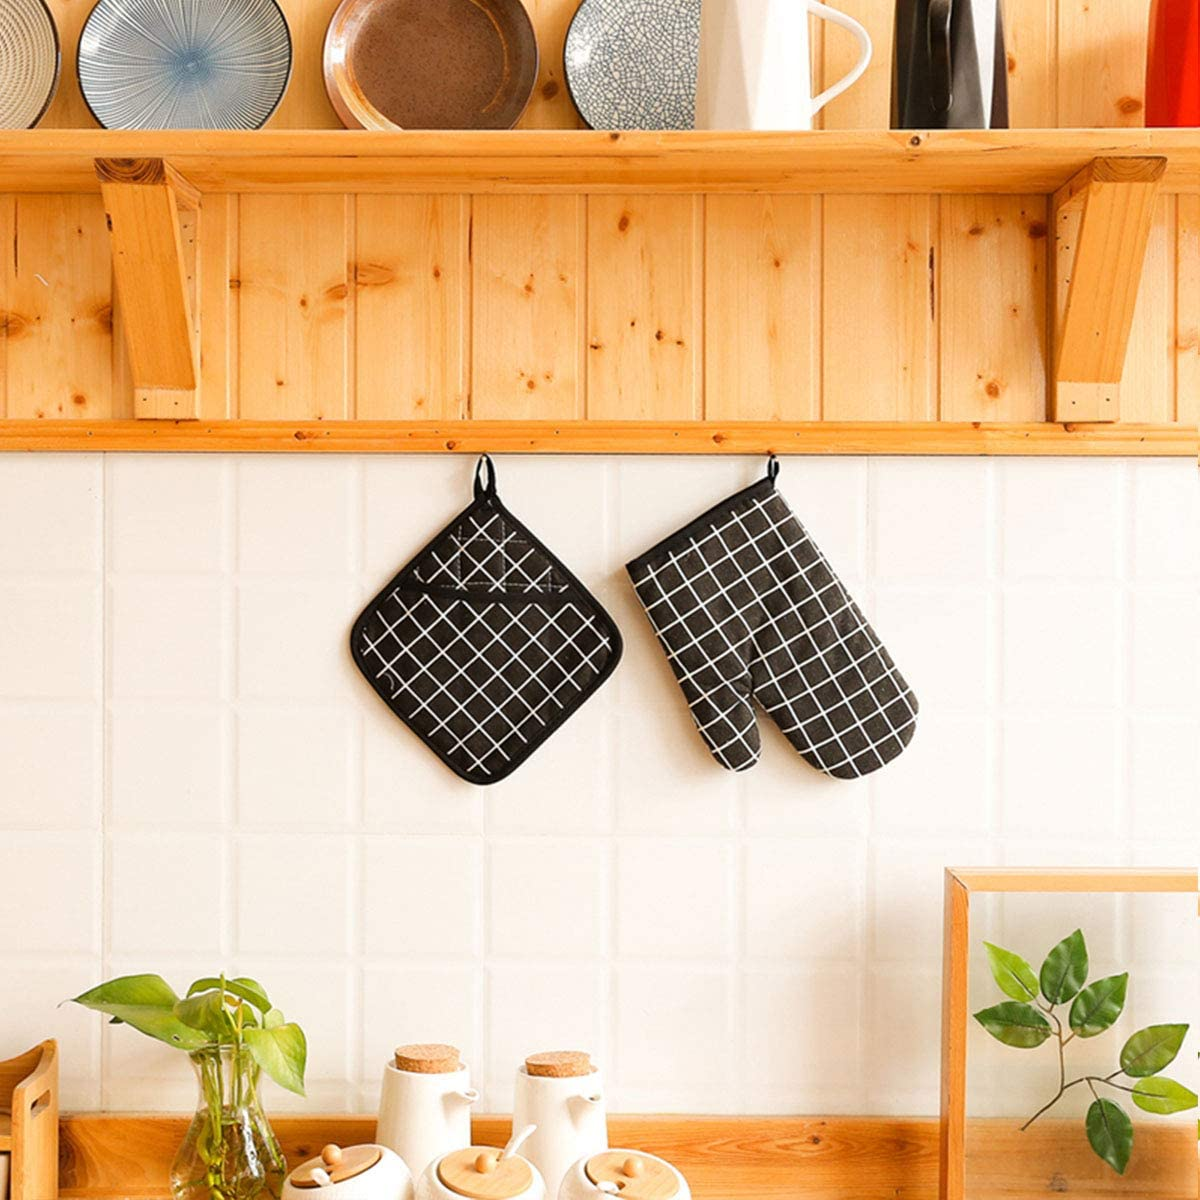 WinChange Oven Mitts and Potholders BBQ Gloves-Oven Mitts and Pot Holders with Recycled Cotton Infill Silicone Non-Slip Cooking Gloves for Cooking Baking Grilling (4-Piece Set,Black)